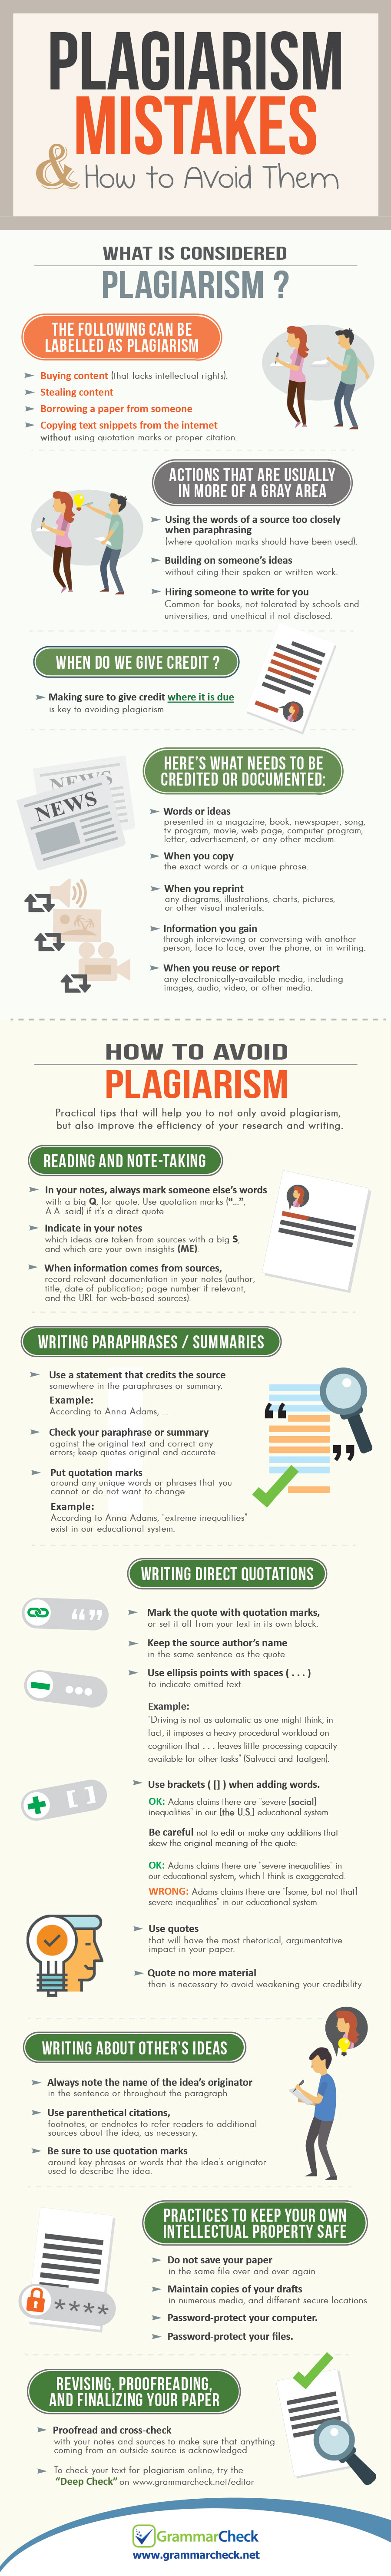 Understanding Plagiarism and How to Avoid Mistakes - Infographic